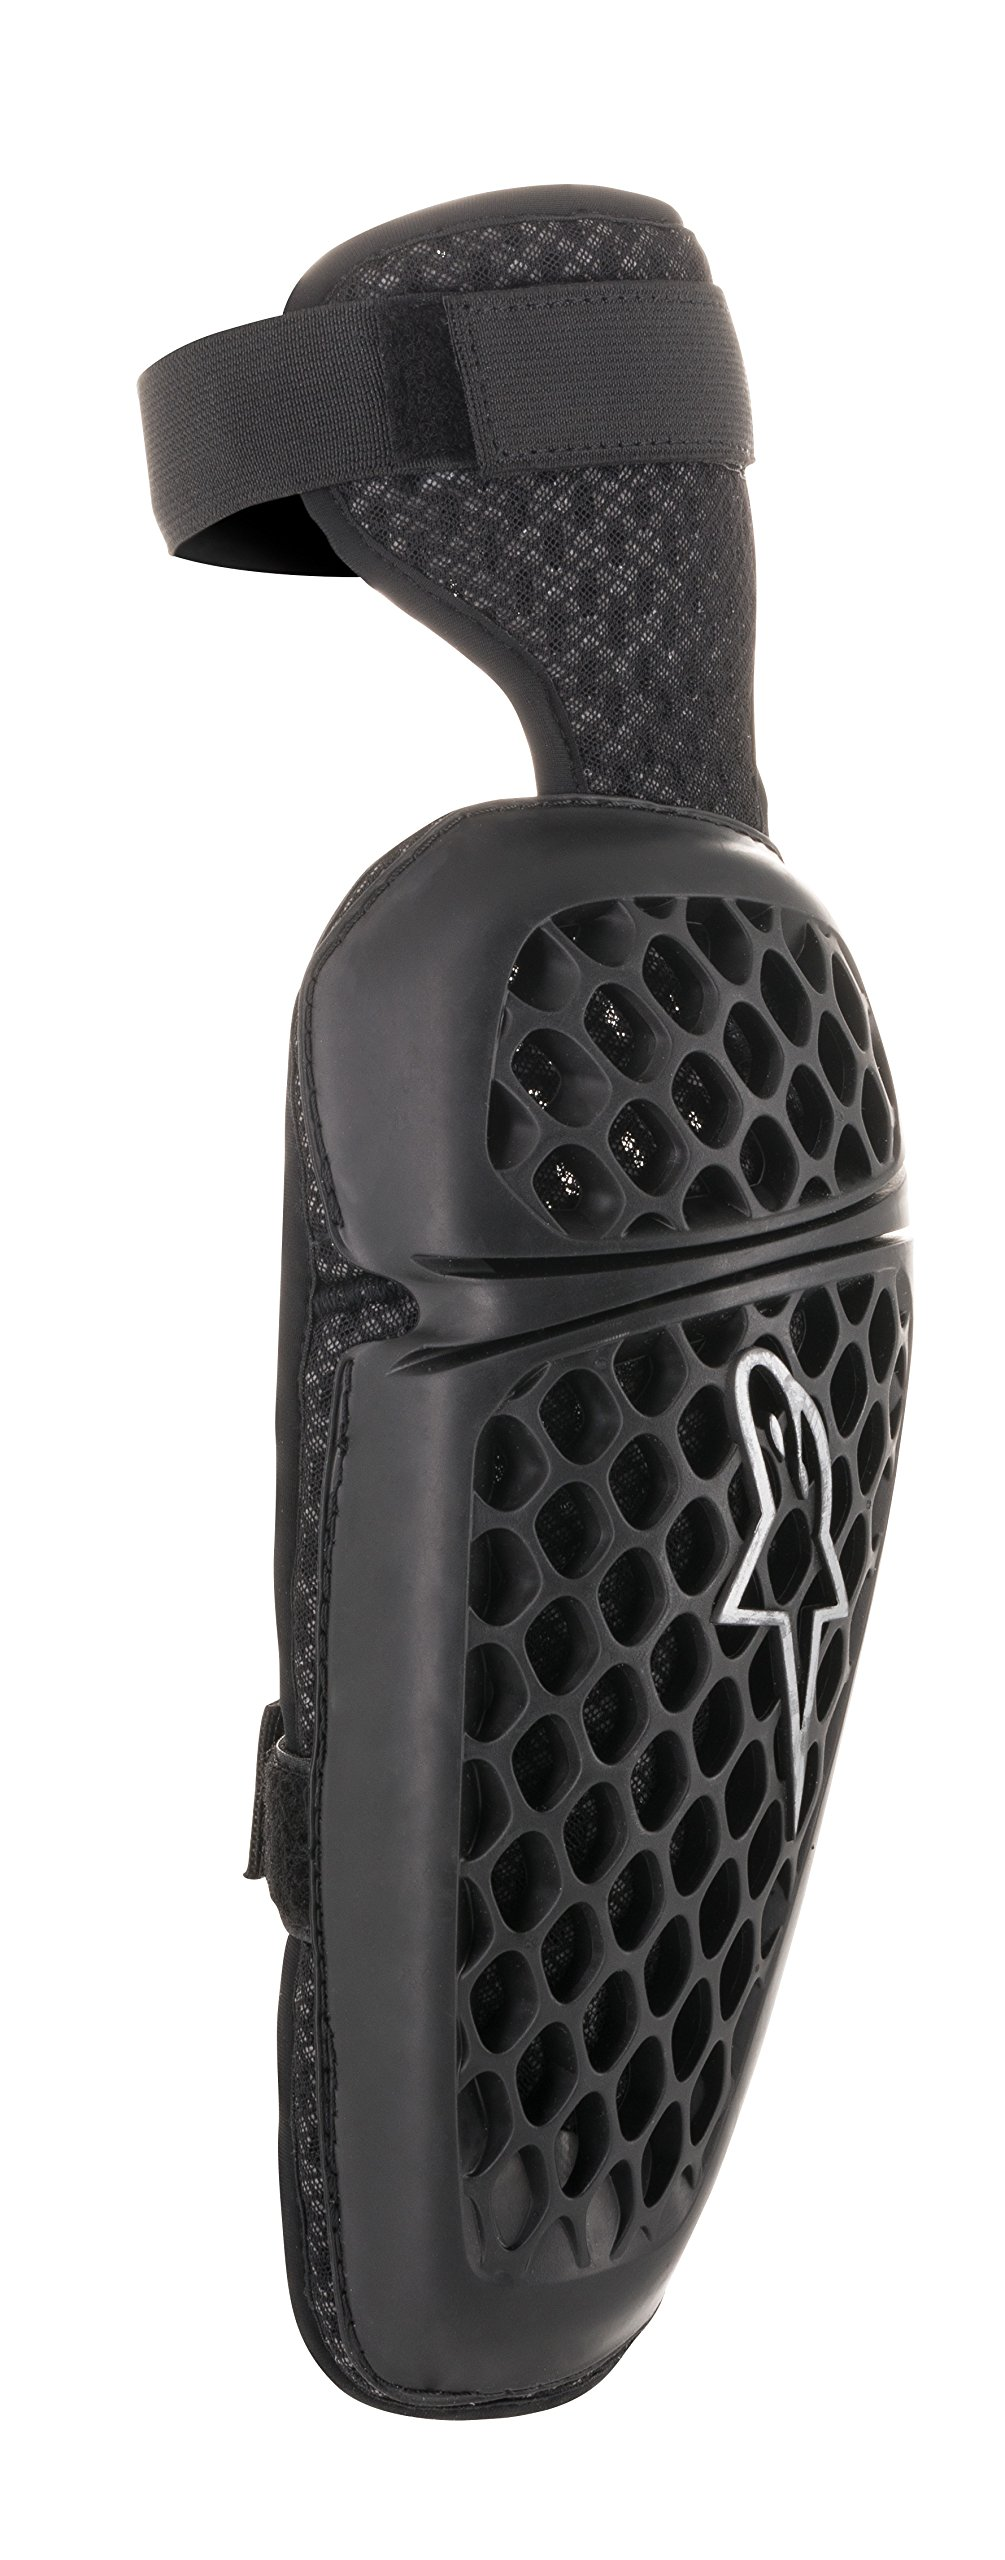 Bionic Plus Youth Off-Road Motocross Elbow Protector (Small/Medium, Black)